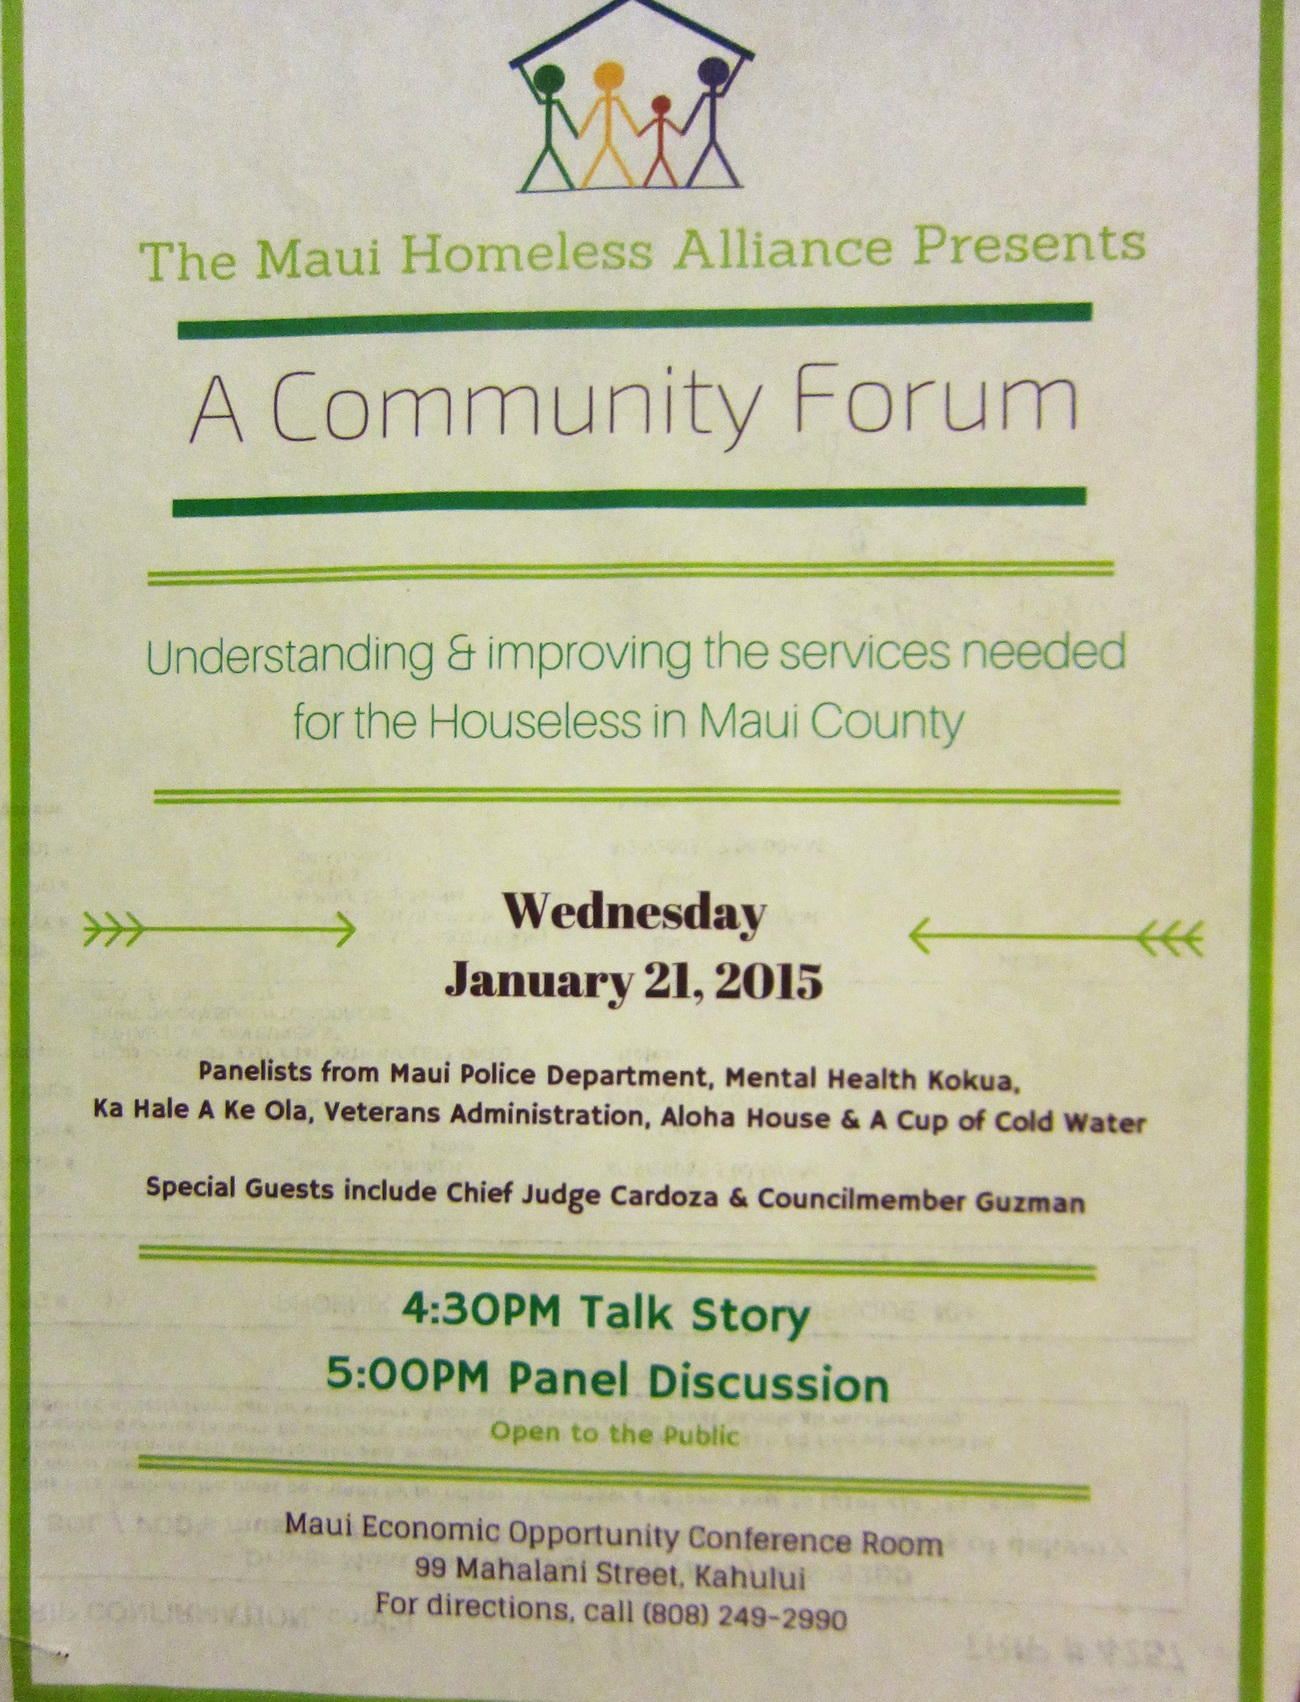 COMMUNITY FORUM ON HOMELESS , WEDNESDAY (1/21/15) IN KAHULUI